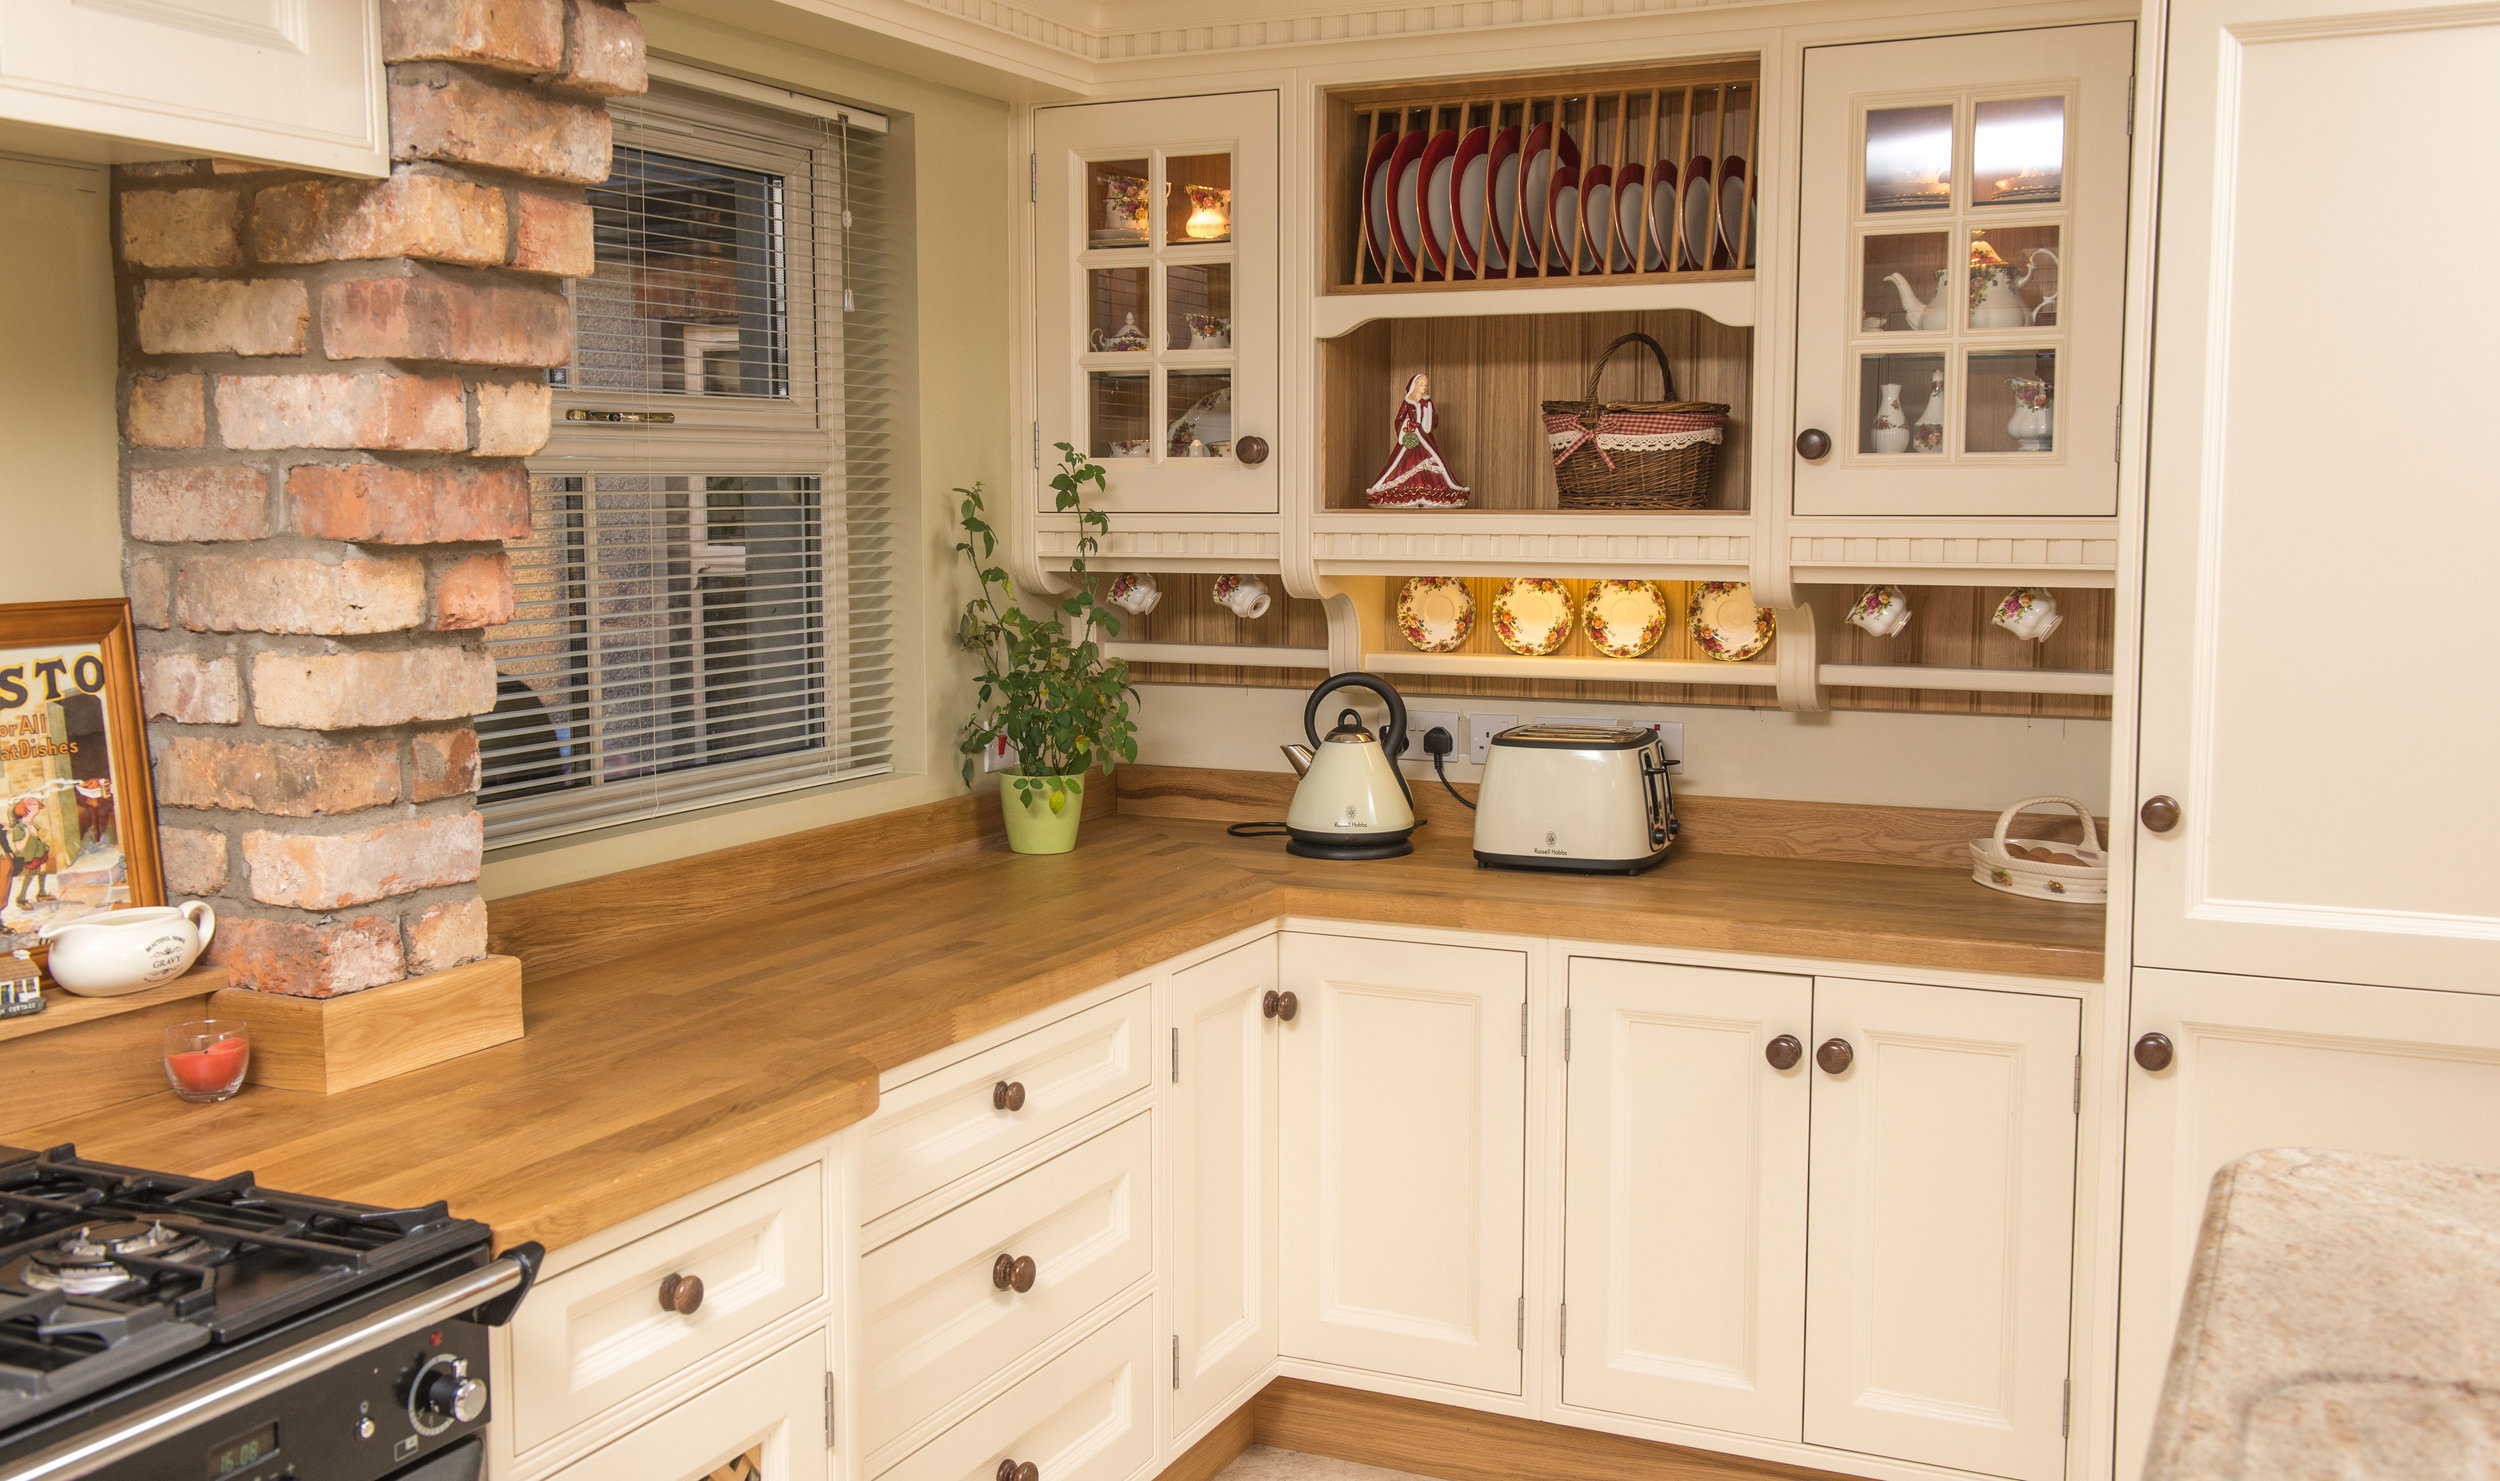 ELM -008 -Hand painted kitchen.JPG